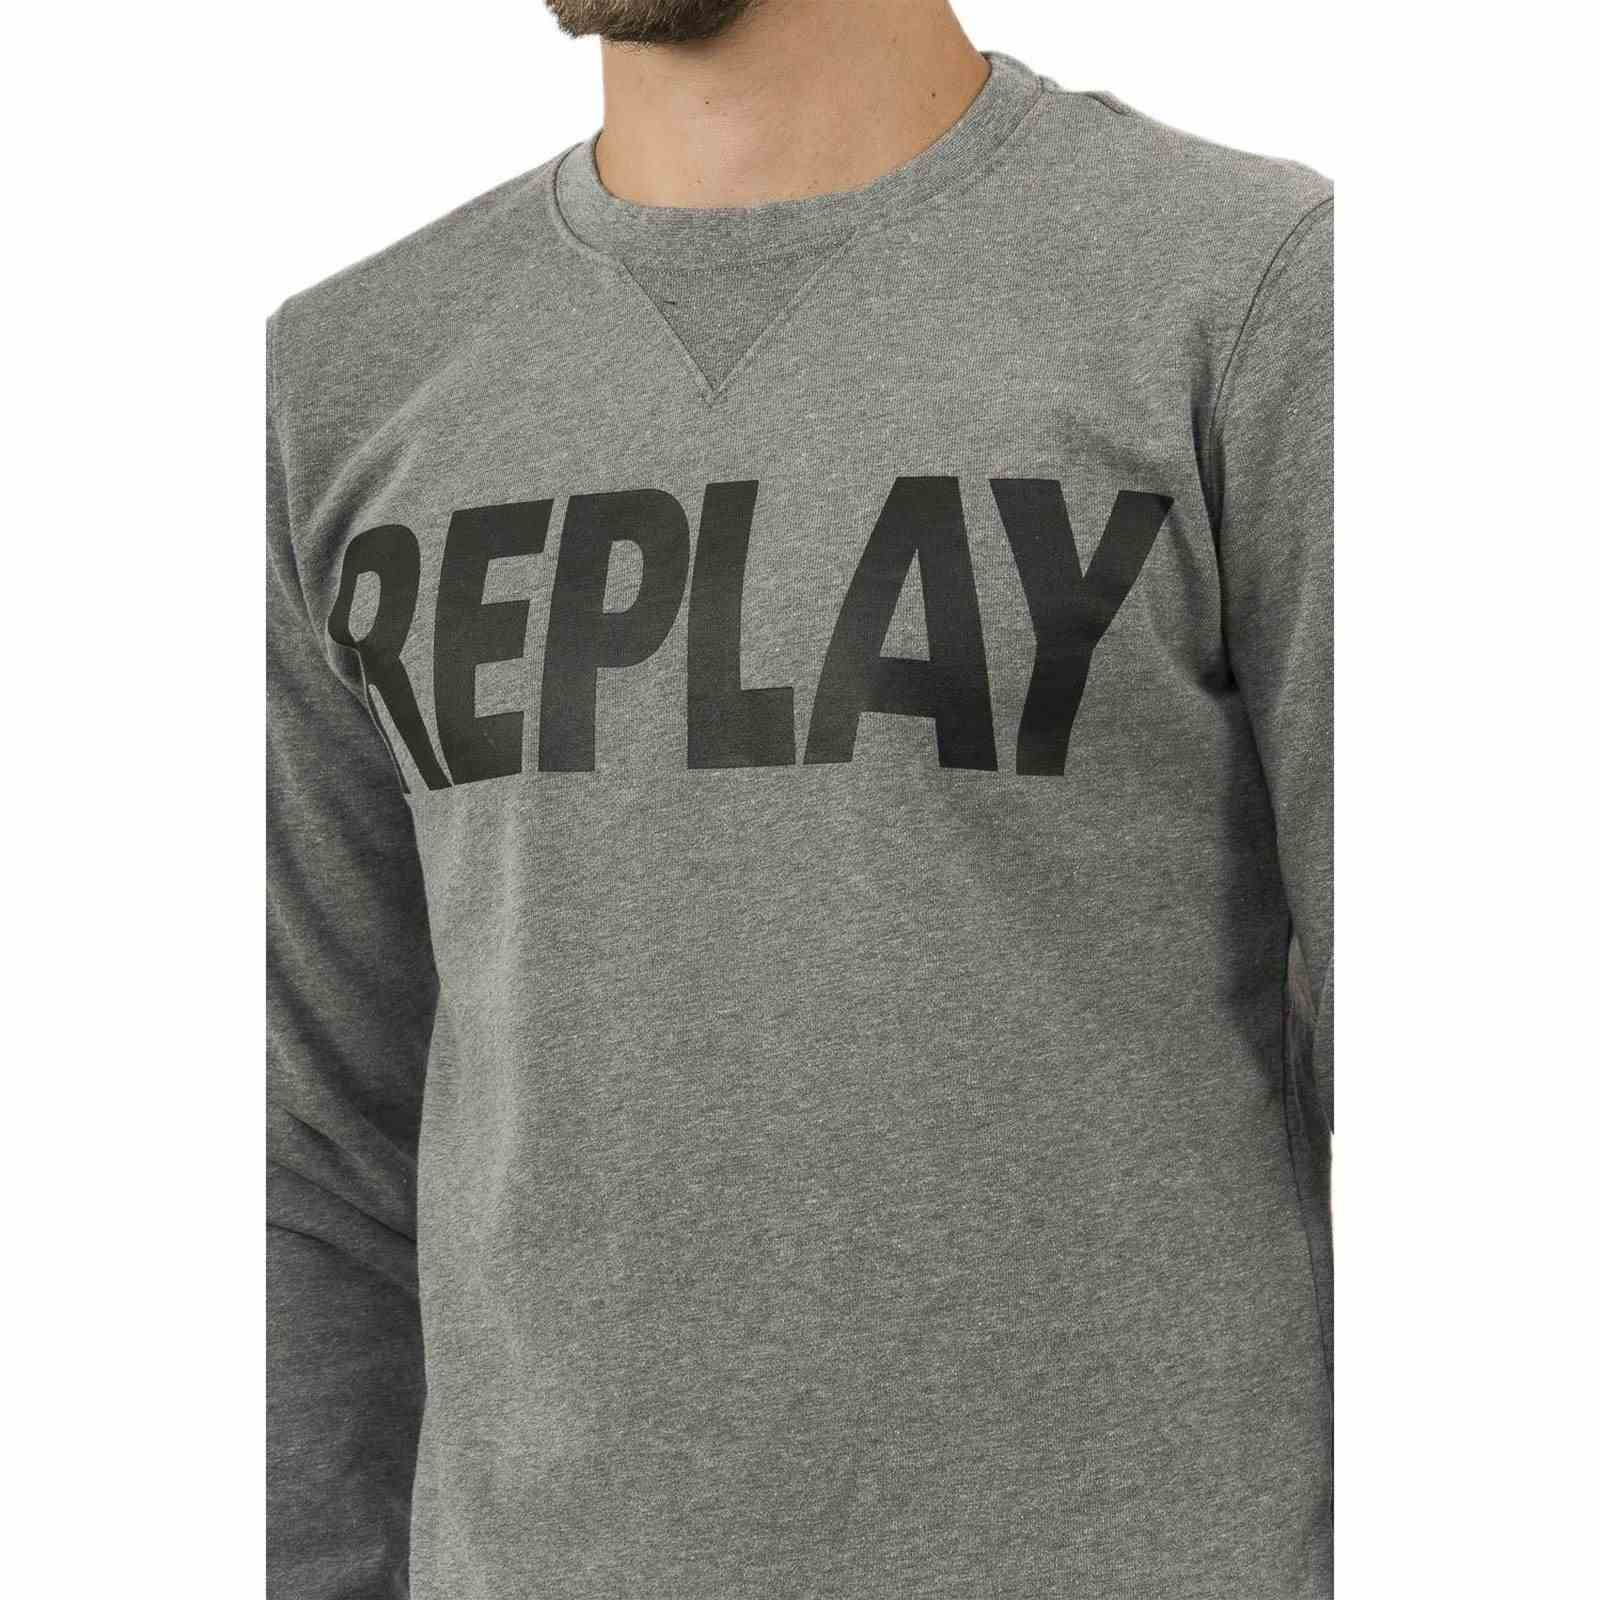 Homme Sweat Replay Homme Sweat shirtGris V shirtGris Homme Replay Sweat V Replay shirtGris Fc3luK1JT